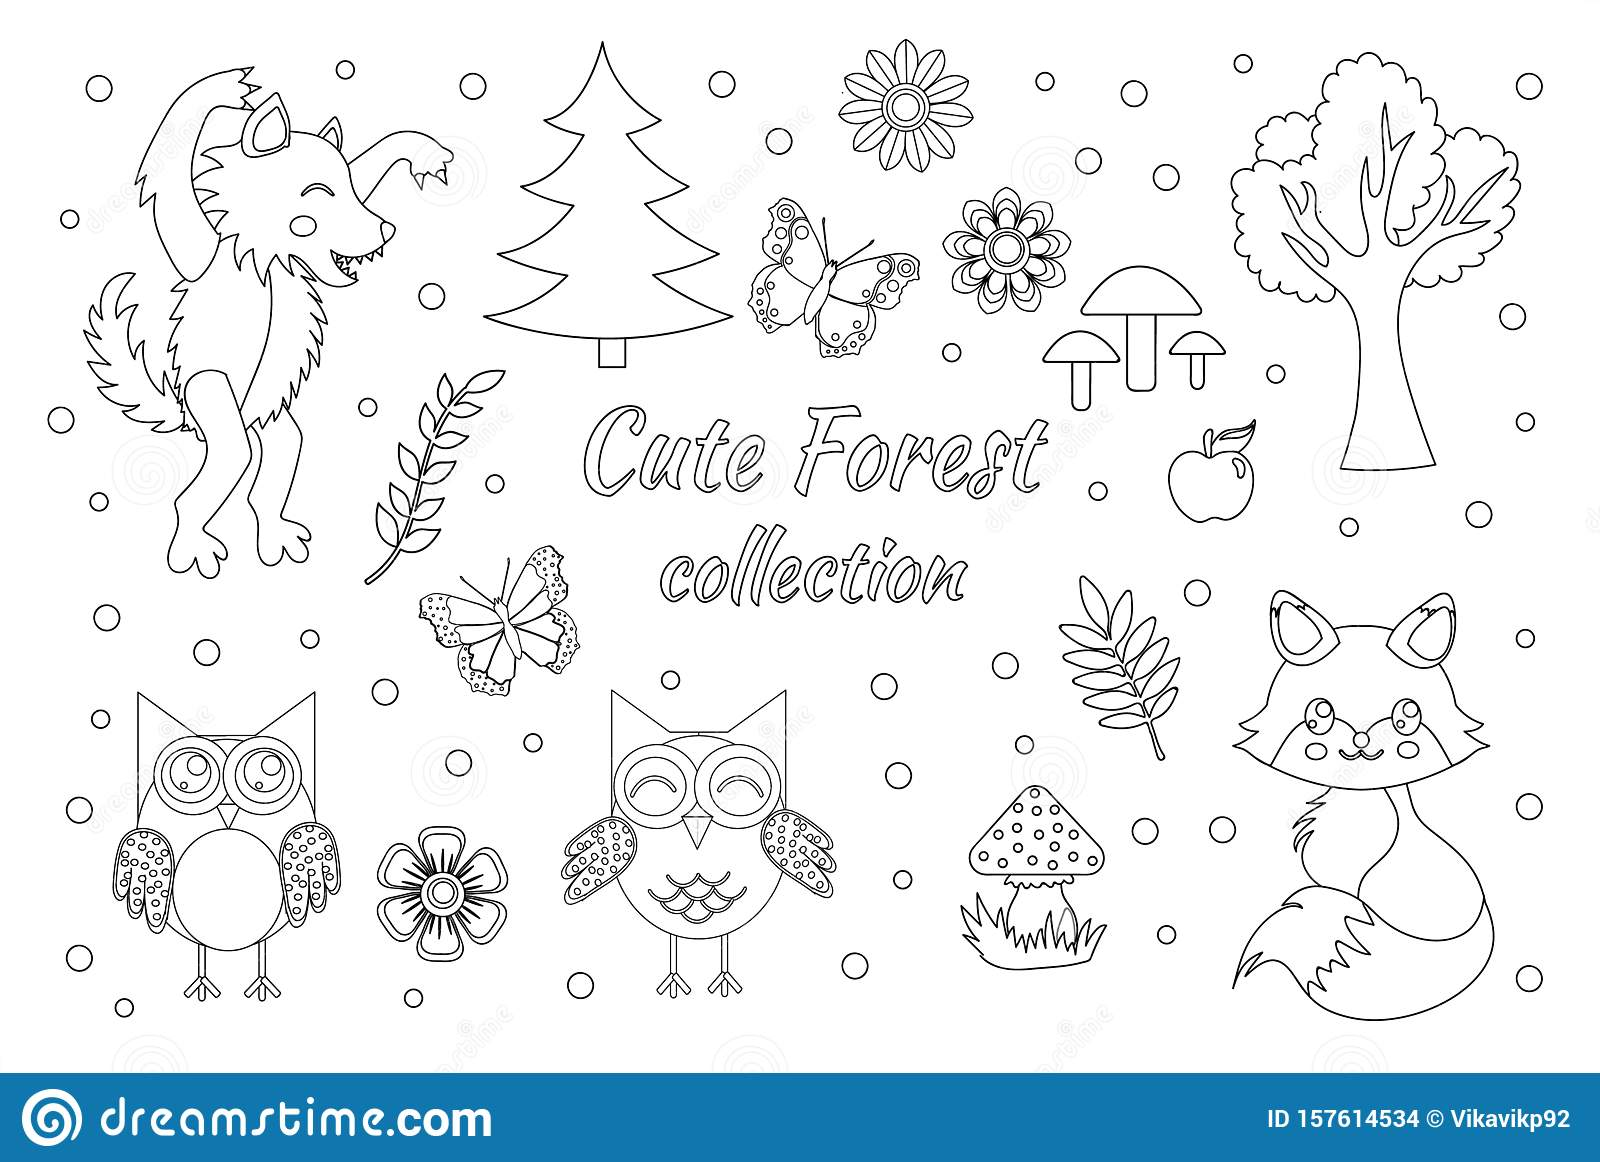 Woodland Animal Coloring Pages For Kids. Hand Drawn Vector On ... | 1162x1600